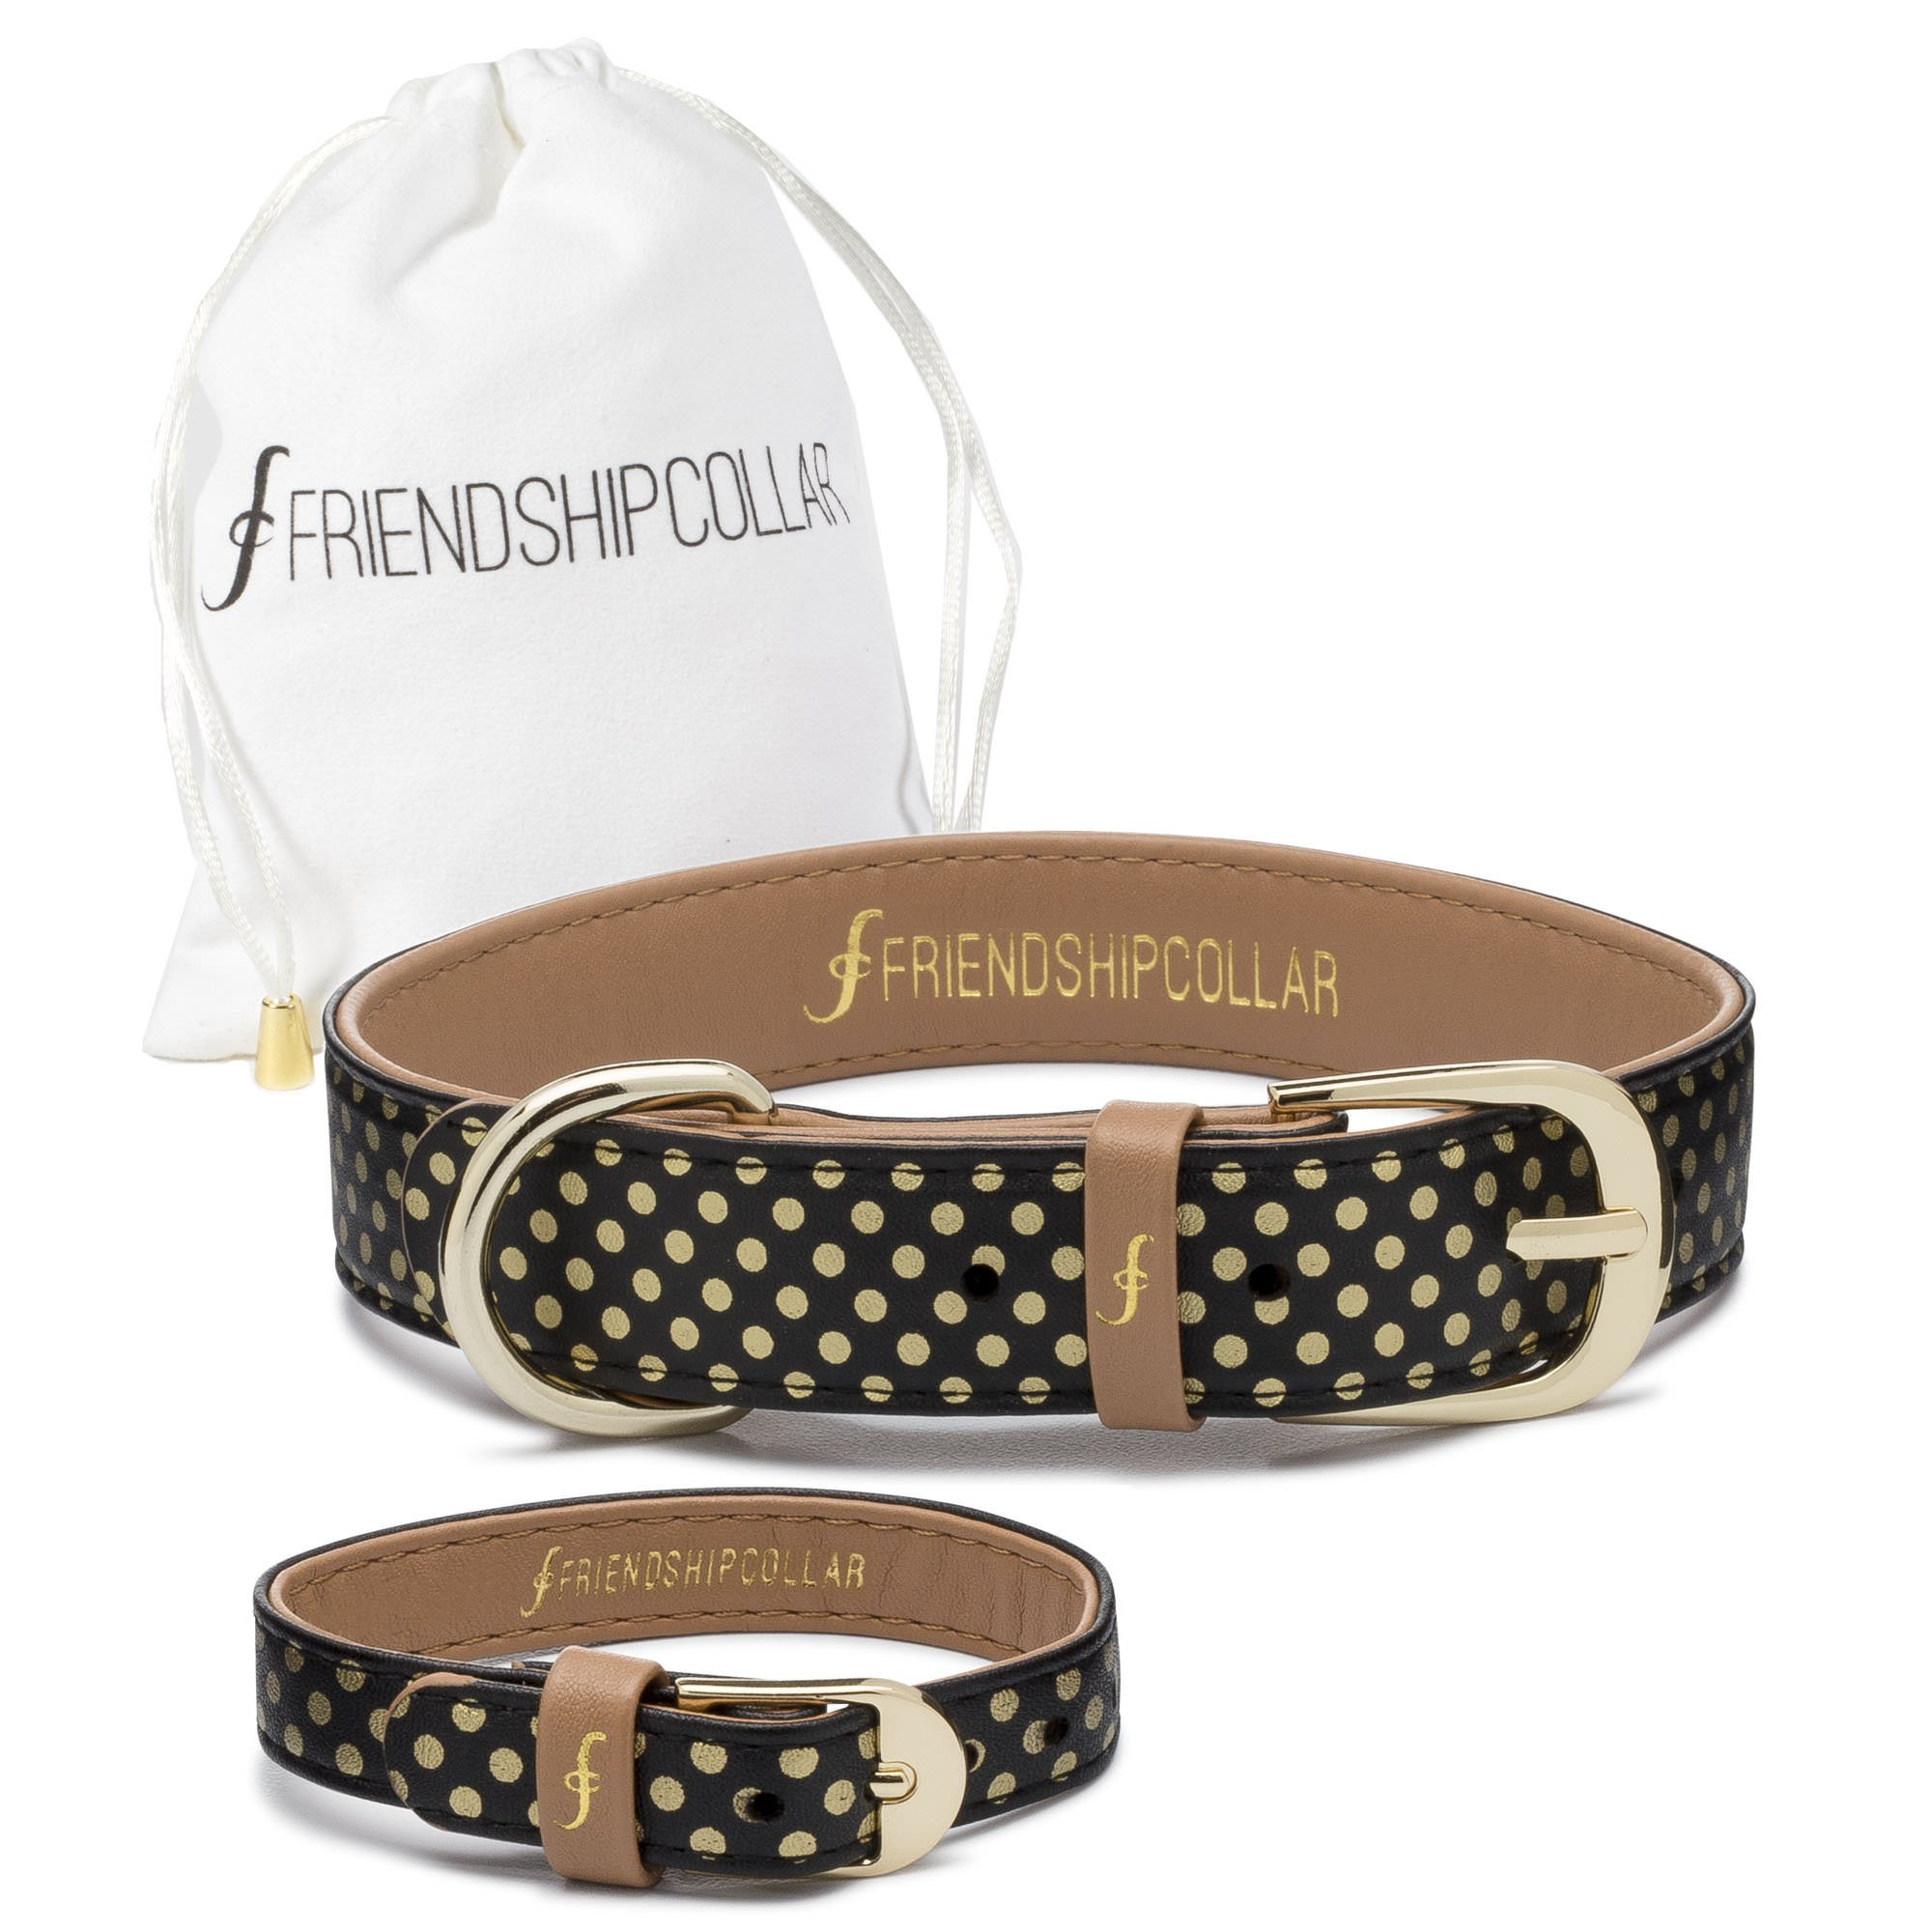 FriendshipCollar Dog Collar and Friendship Bracelet - Dotty About You - Large